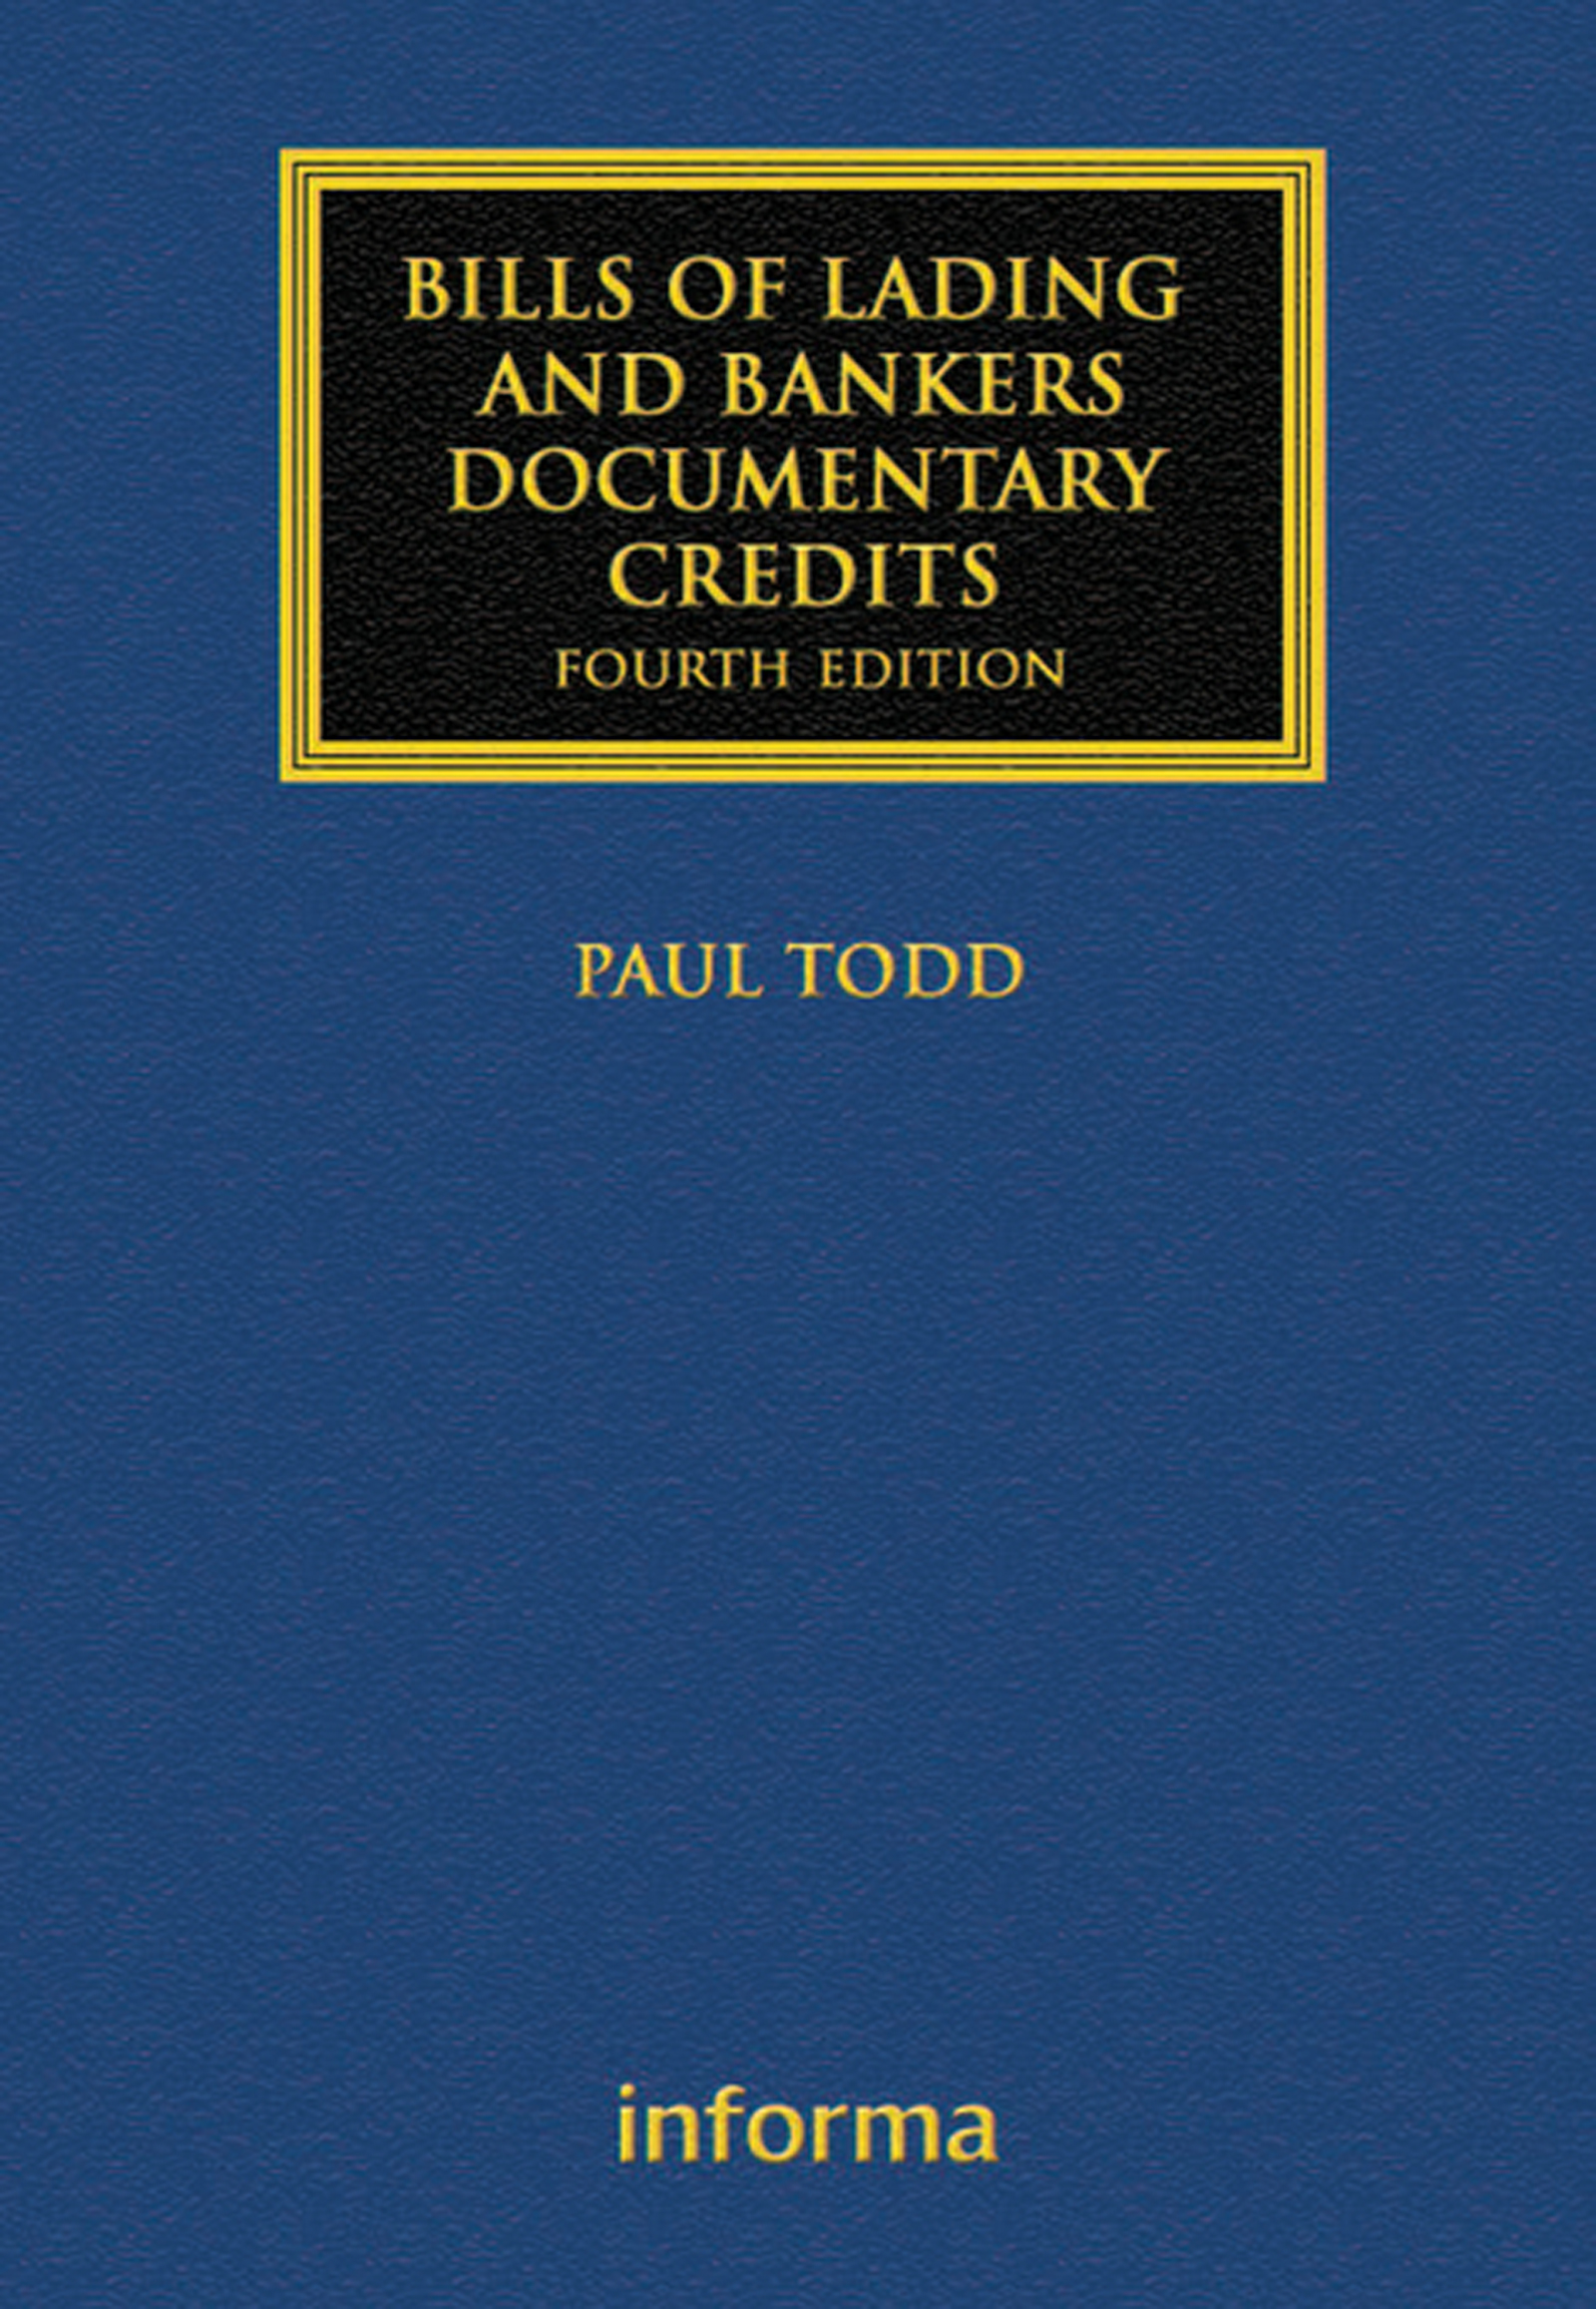 Bills of Lading and Bankers' Documentary Credits